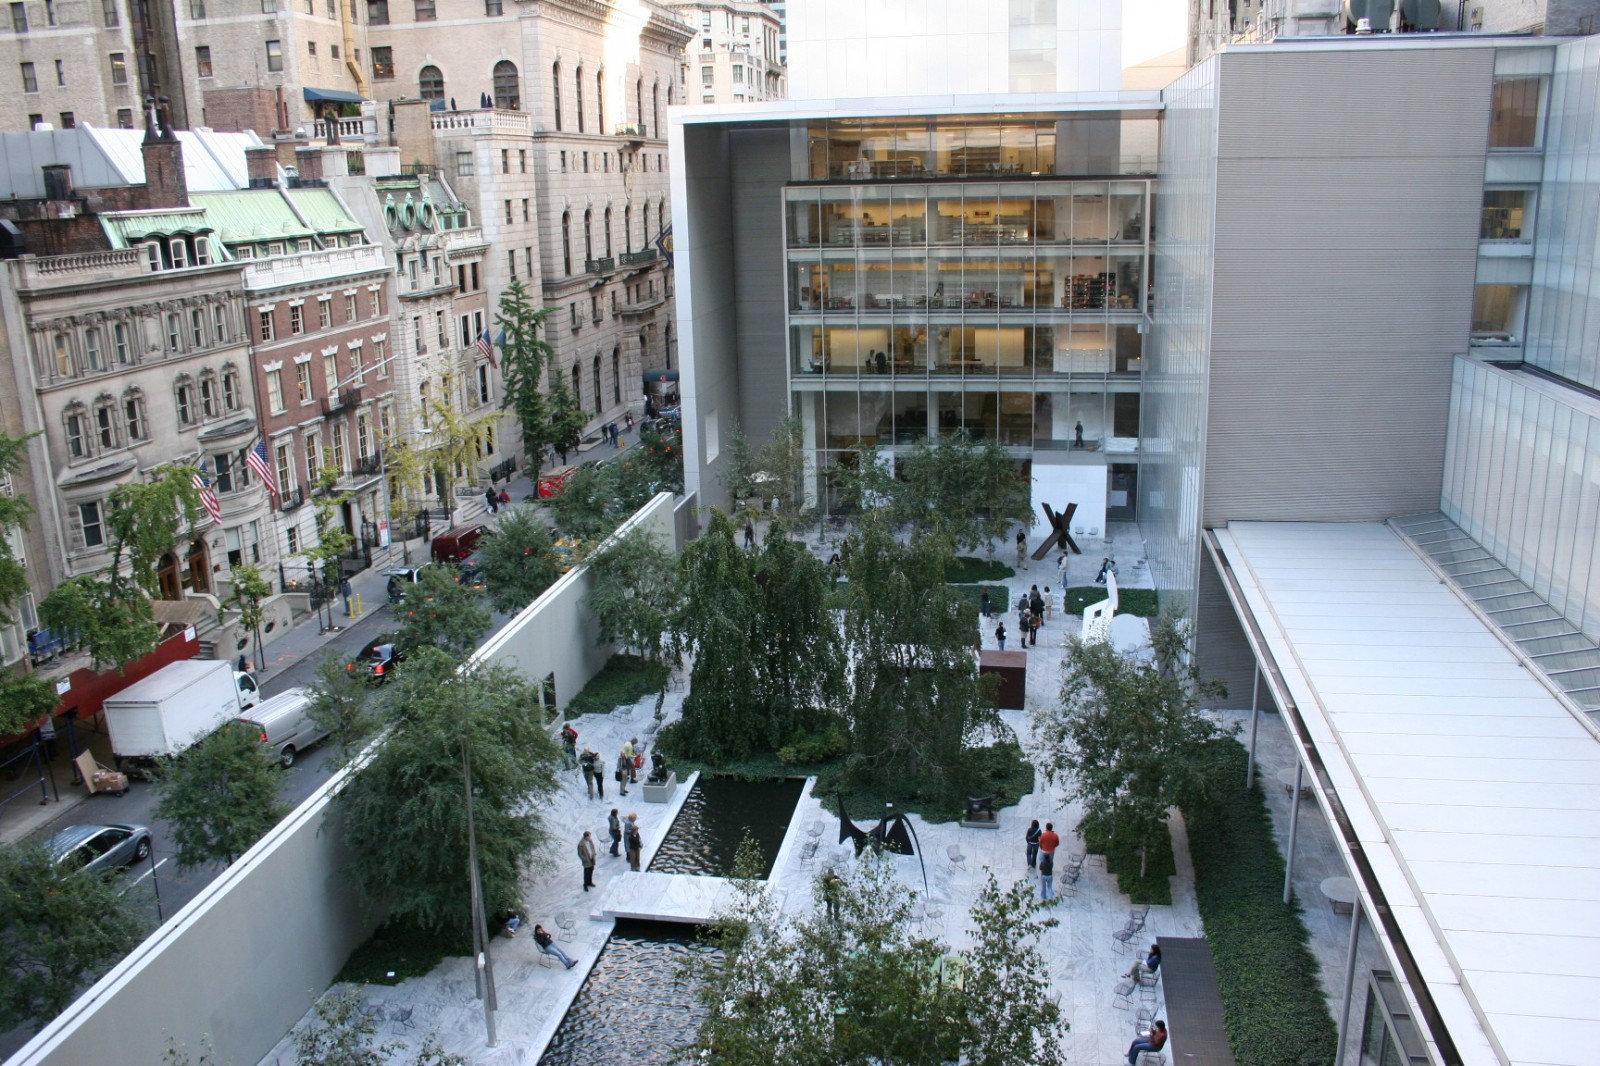 moma new york courtyard from the caf 5 terrace 1600x1066